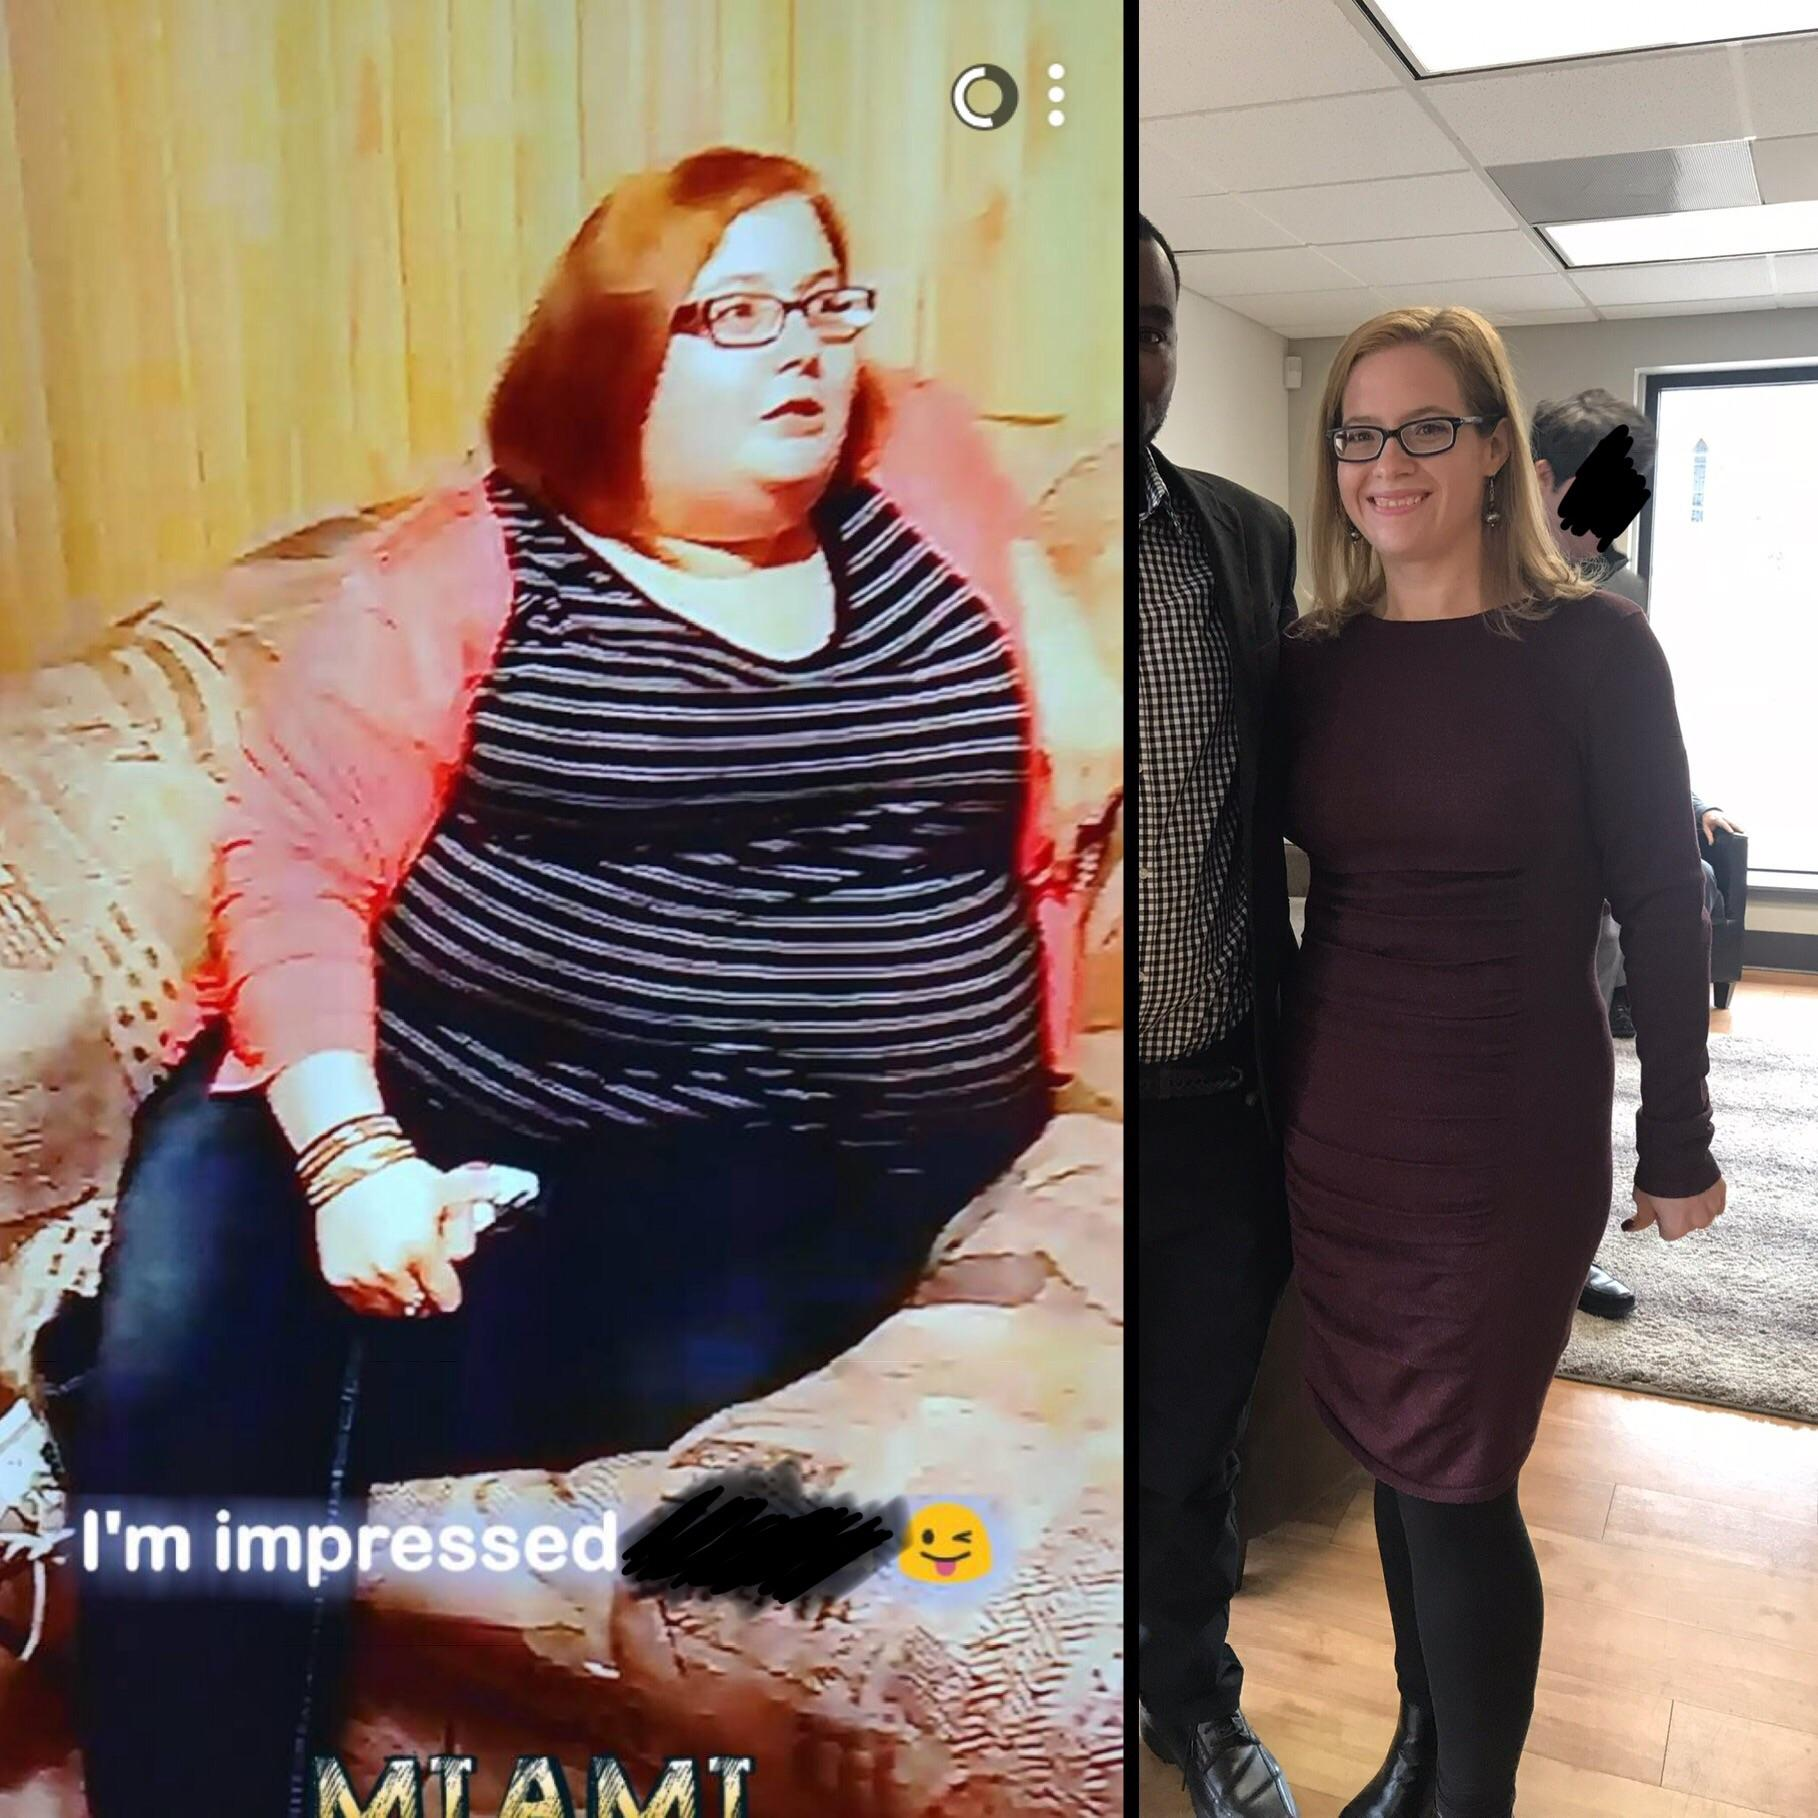 Before and After 182 lbs Weight Loss 5 foot 3 Female 322 lbs to 140 lbs